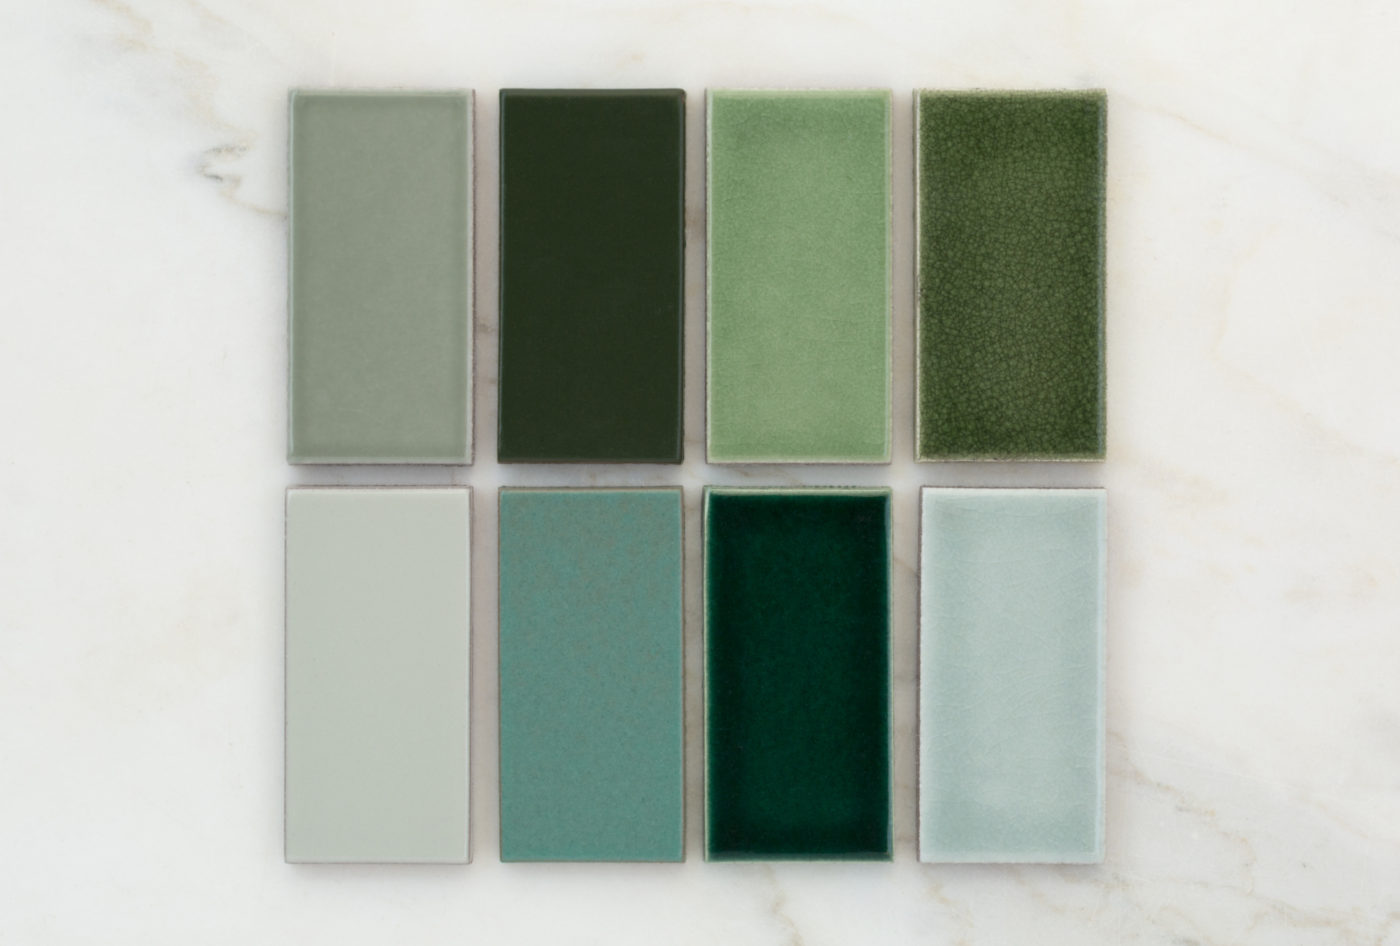 2019 Q2 Fireclay Favorites Greens All Color Samples Rosemary Hunter Green Kelp Basil With Black Patine Oyster Shell Tidewater Venetian Green Salton Sea